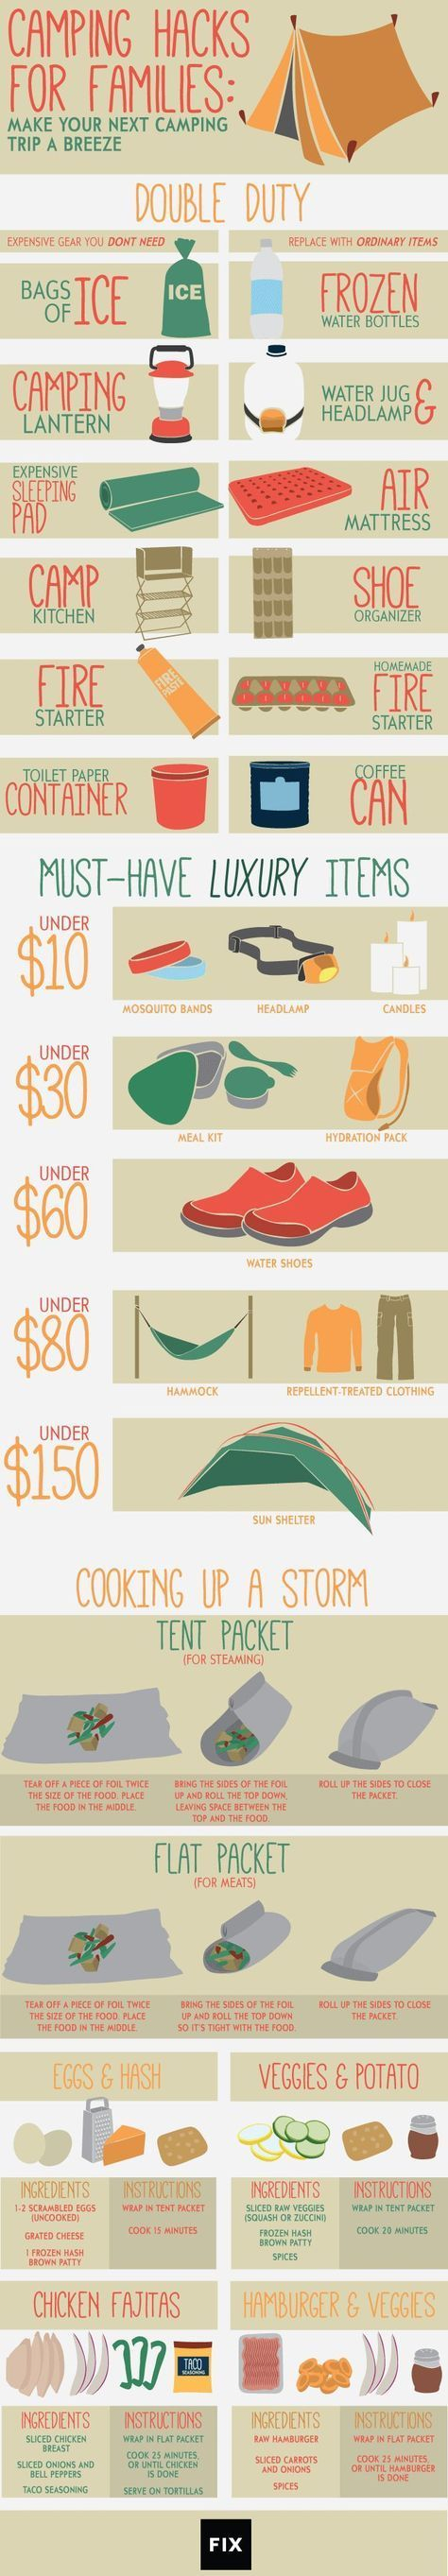 Photo of Follow these fun camping hacks to save time, space, and money on your next famil…